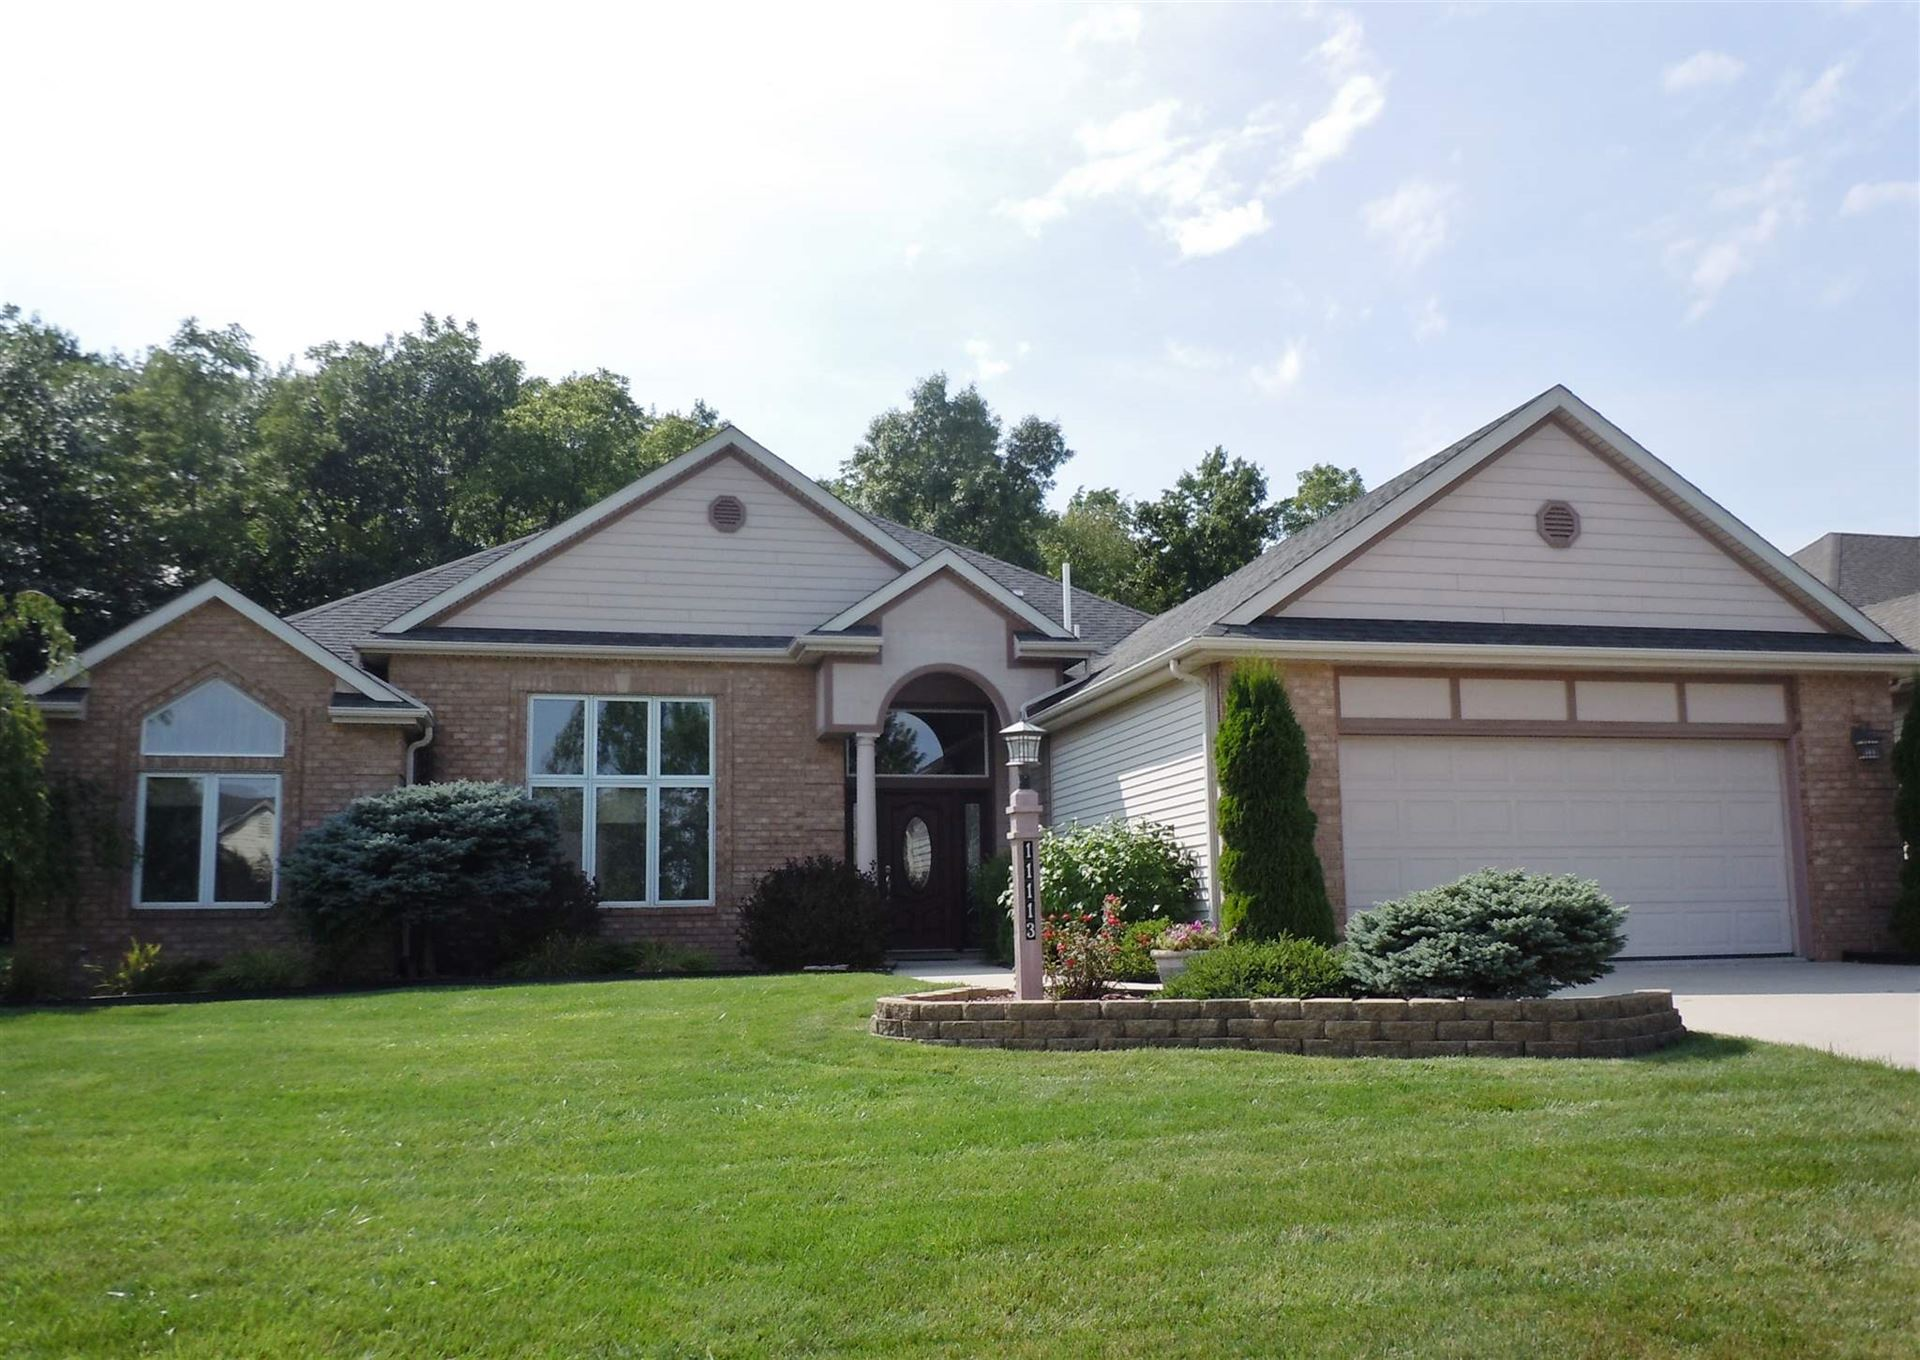 11113 LaVista Place, Fort Wayne, IN 46845 - #: 202003905